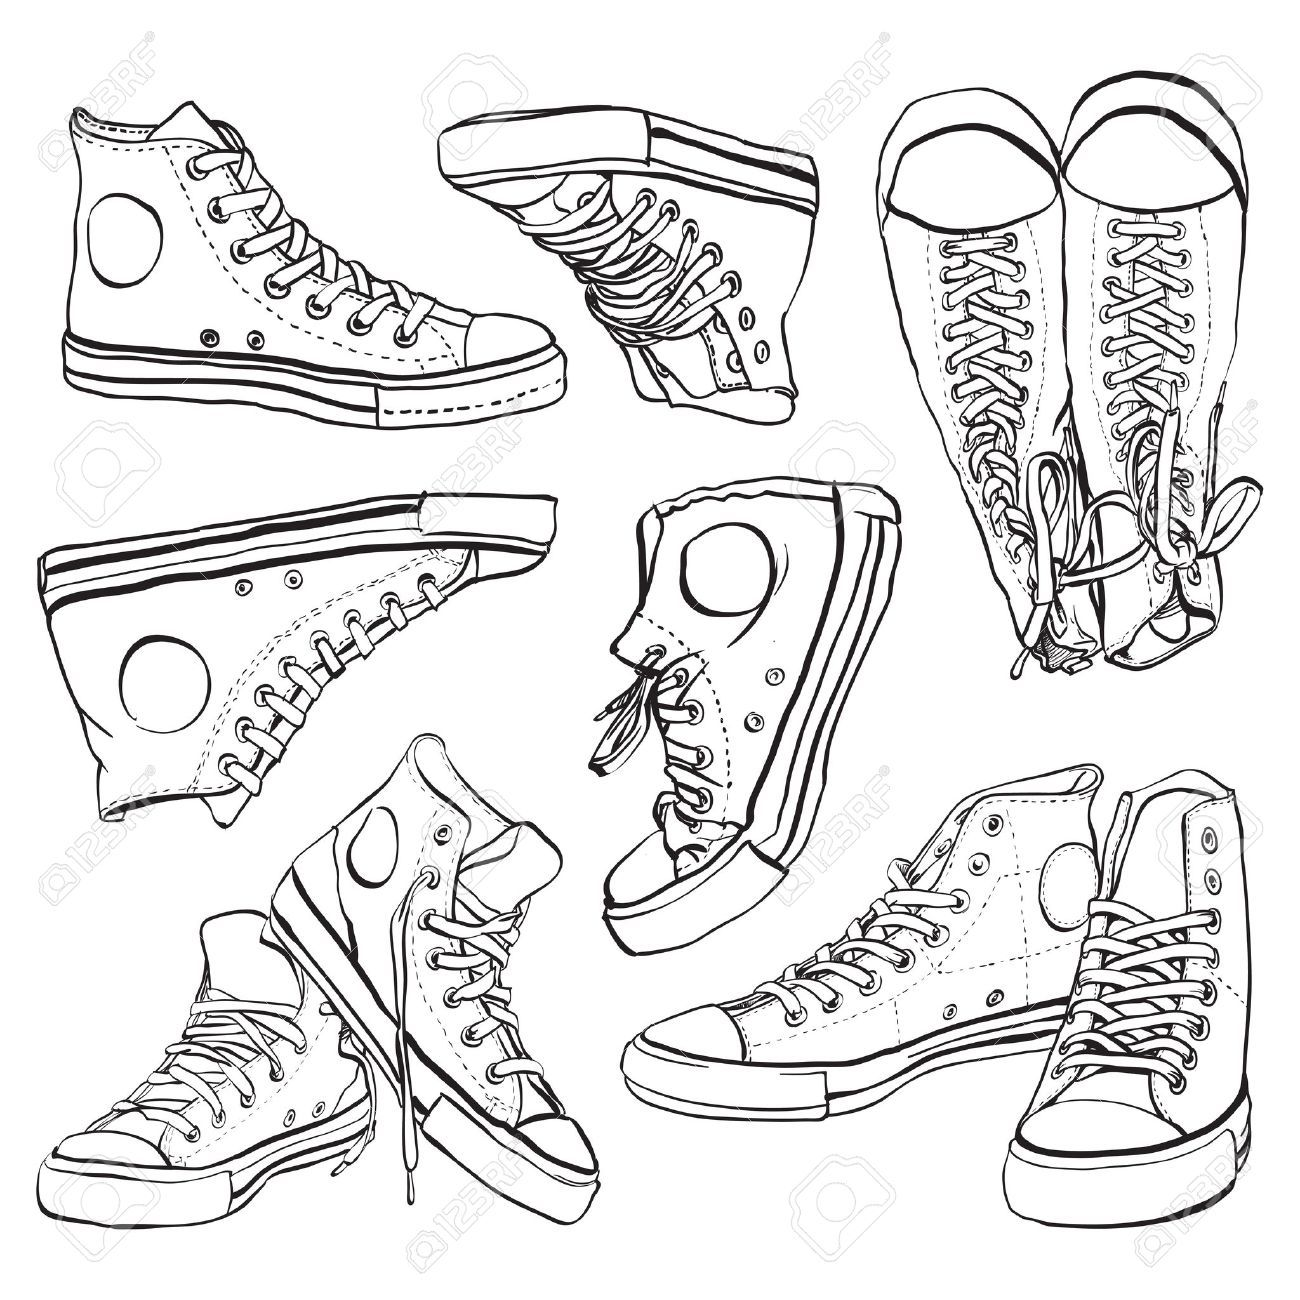 fa9d4f69edb4 Image result for converse illustration